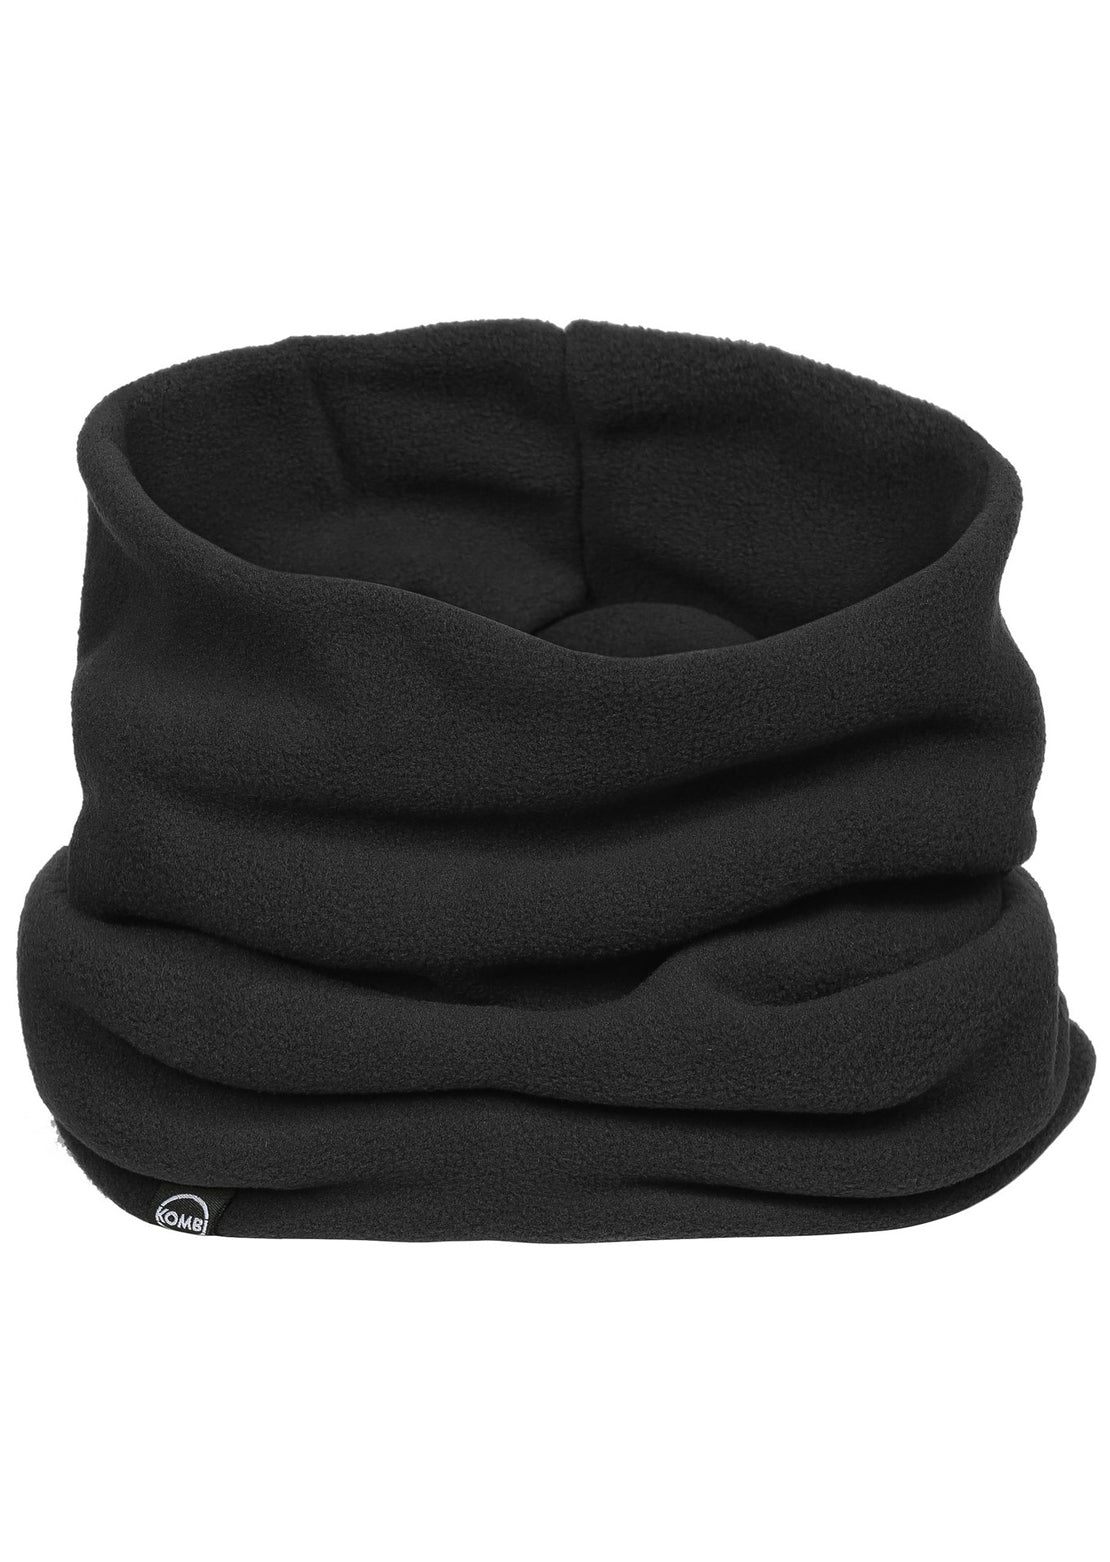 Kombi Junior Toddler The Comfiest Children Neck Warmer Black